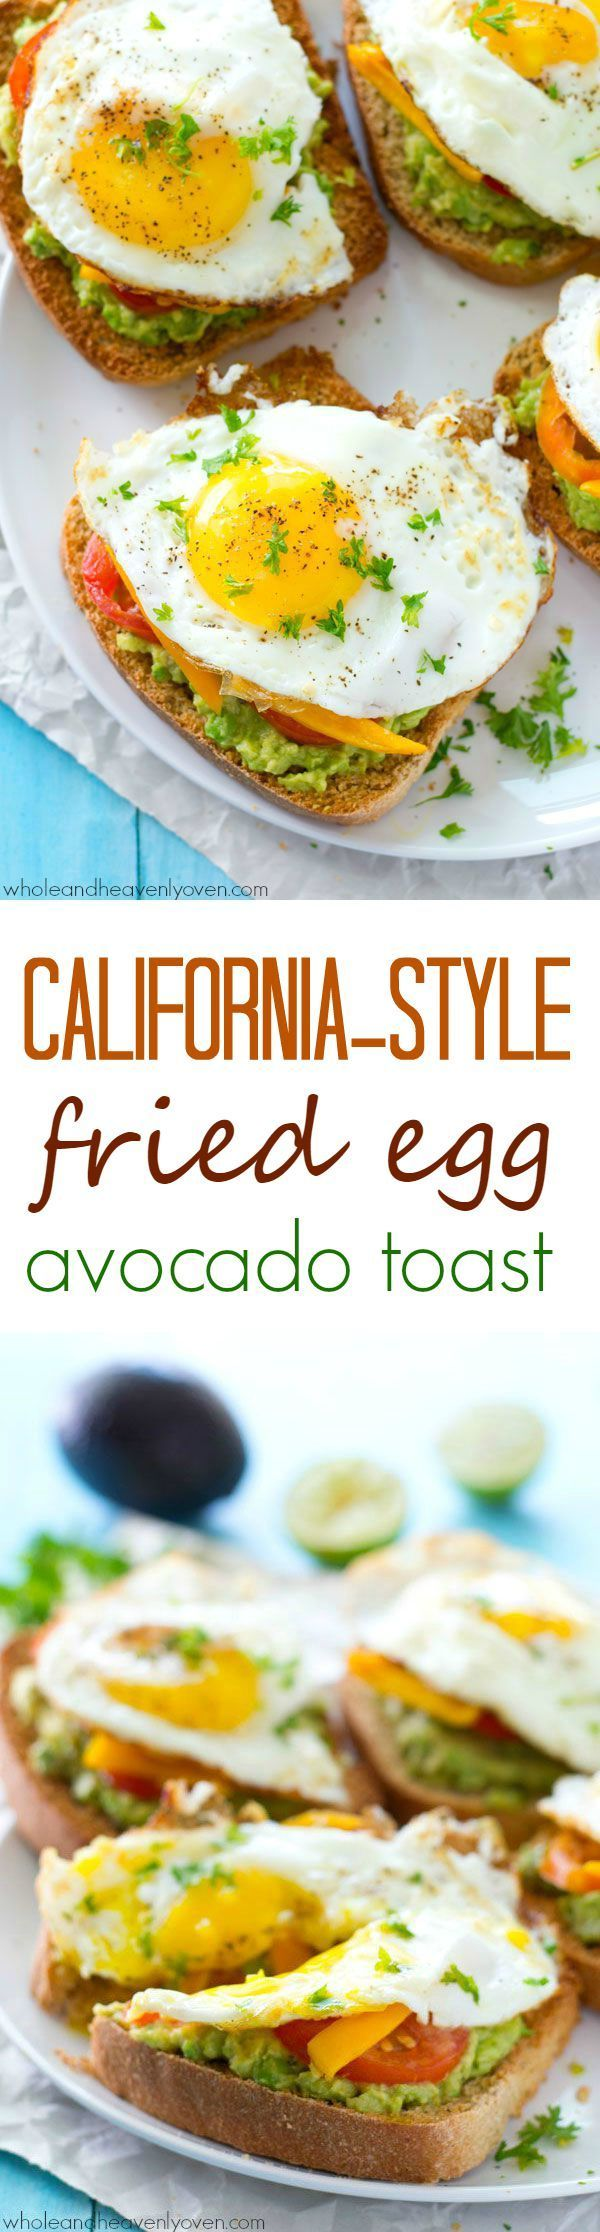 Avocado toast is given a fun California-style twist! This ultimate breakfast toast is piled with lots of smashed avocado, fresh veggies, and a beautiful fried egg on top.